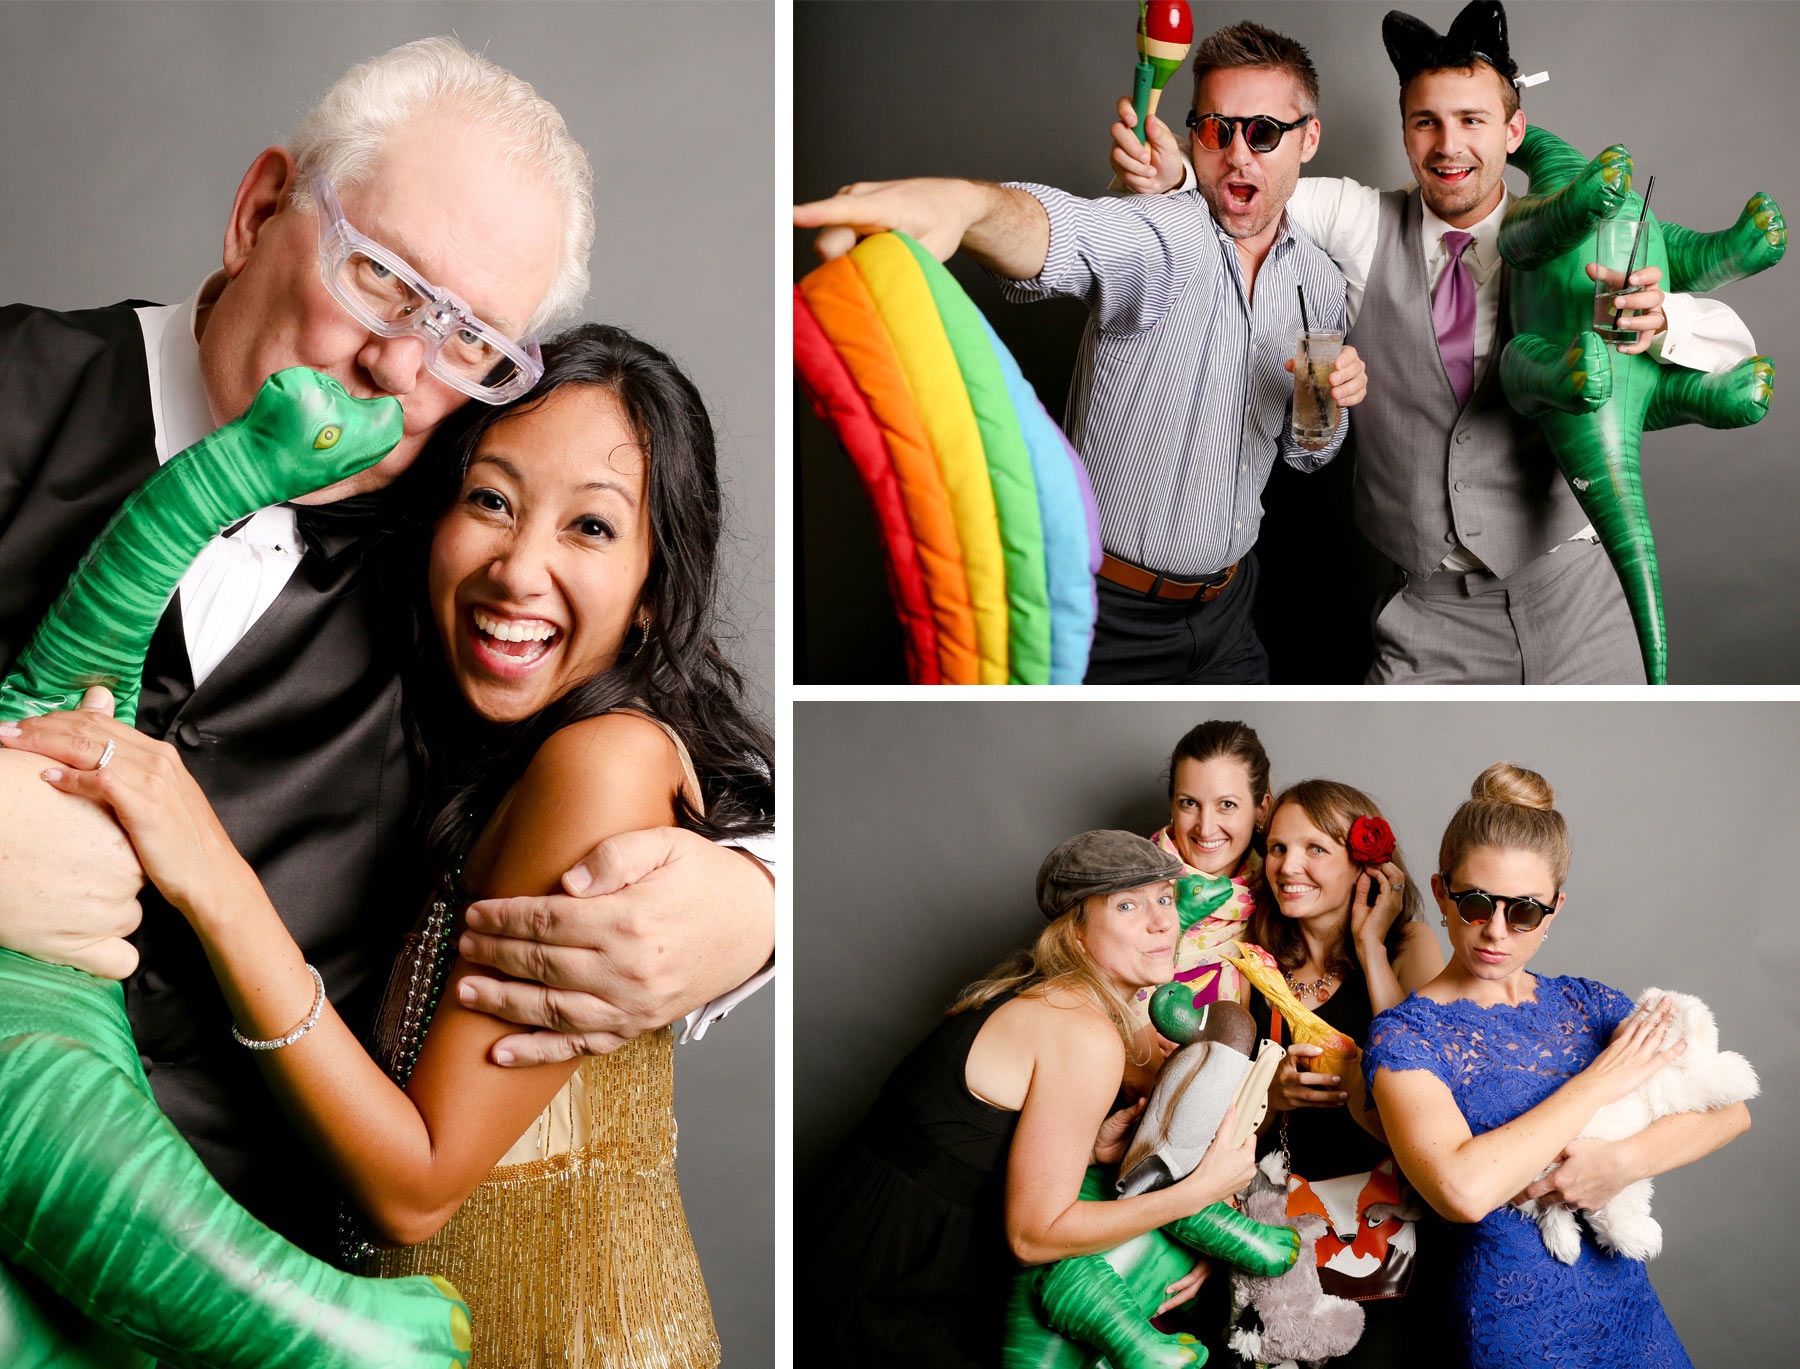 09-Minneapolis-Minnesota-Wedding-Photography-by-Vick-Photography-Crazy-Cam-Reception-Lafayette-Country-Club-Dance.jpg